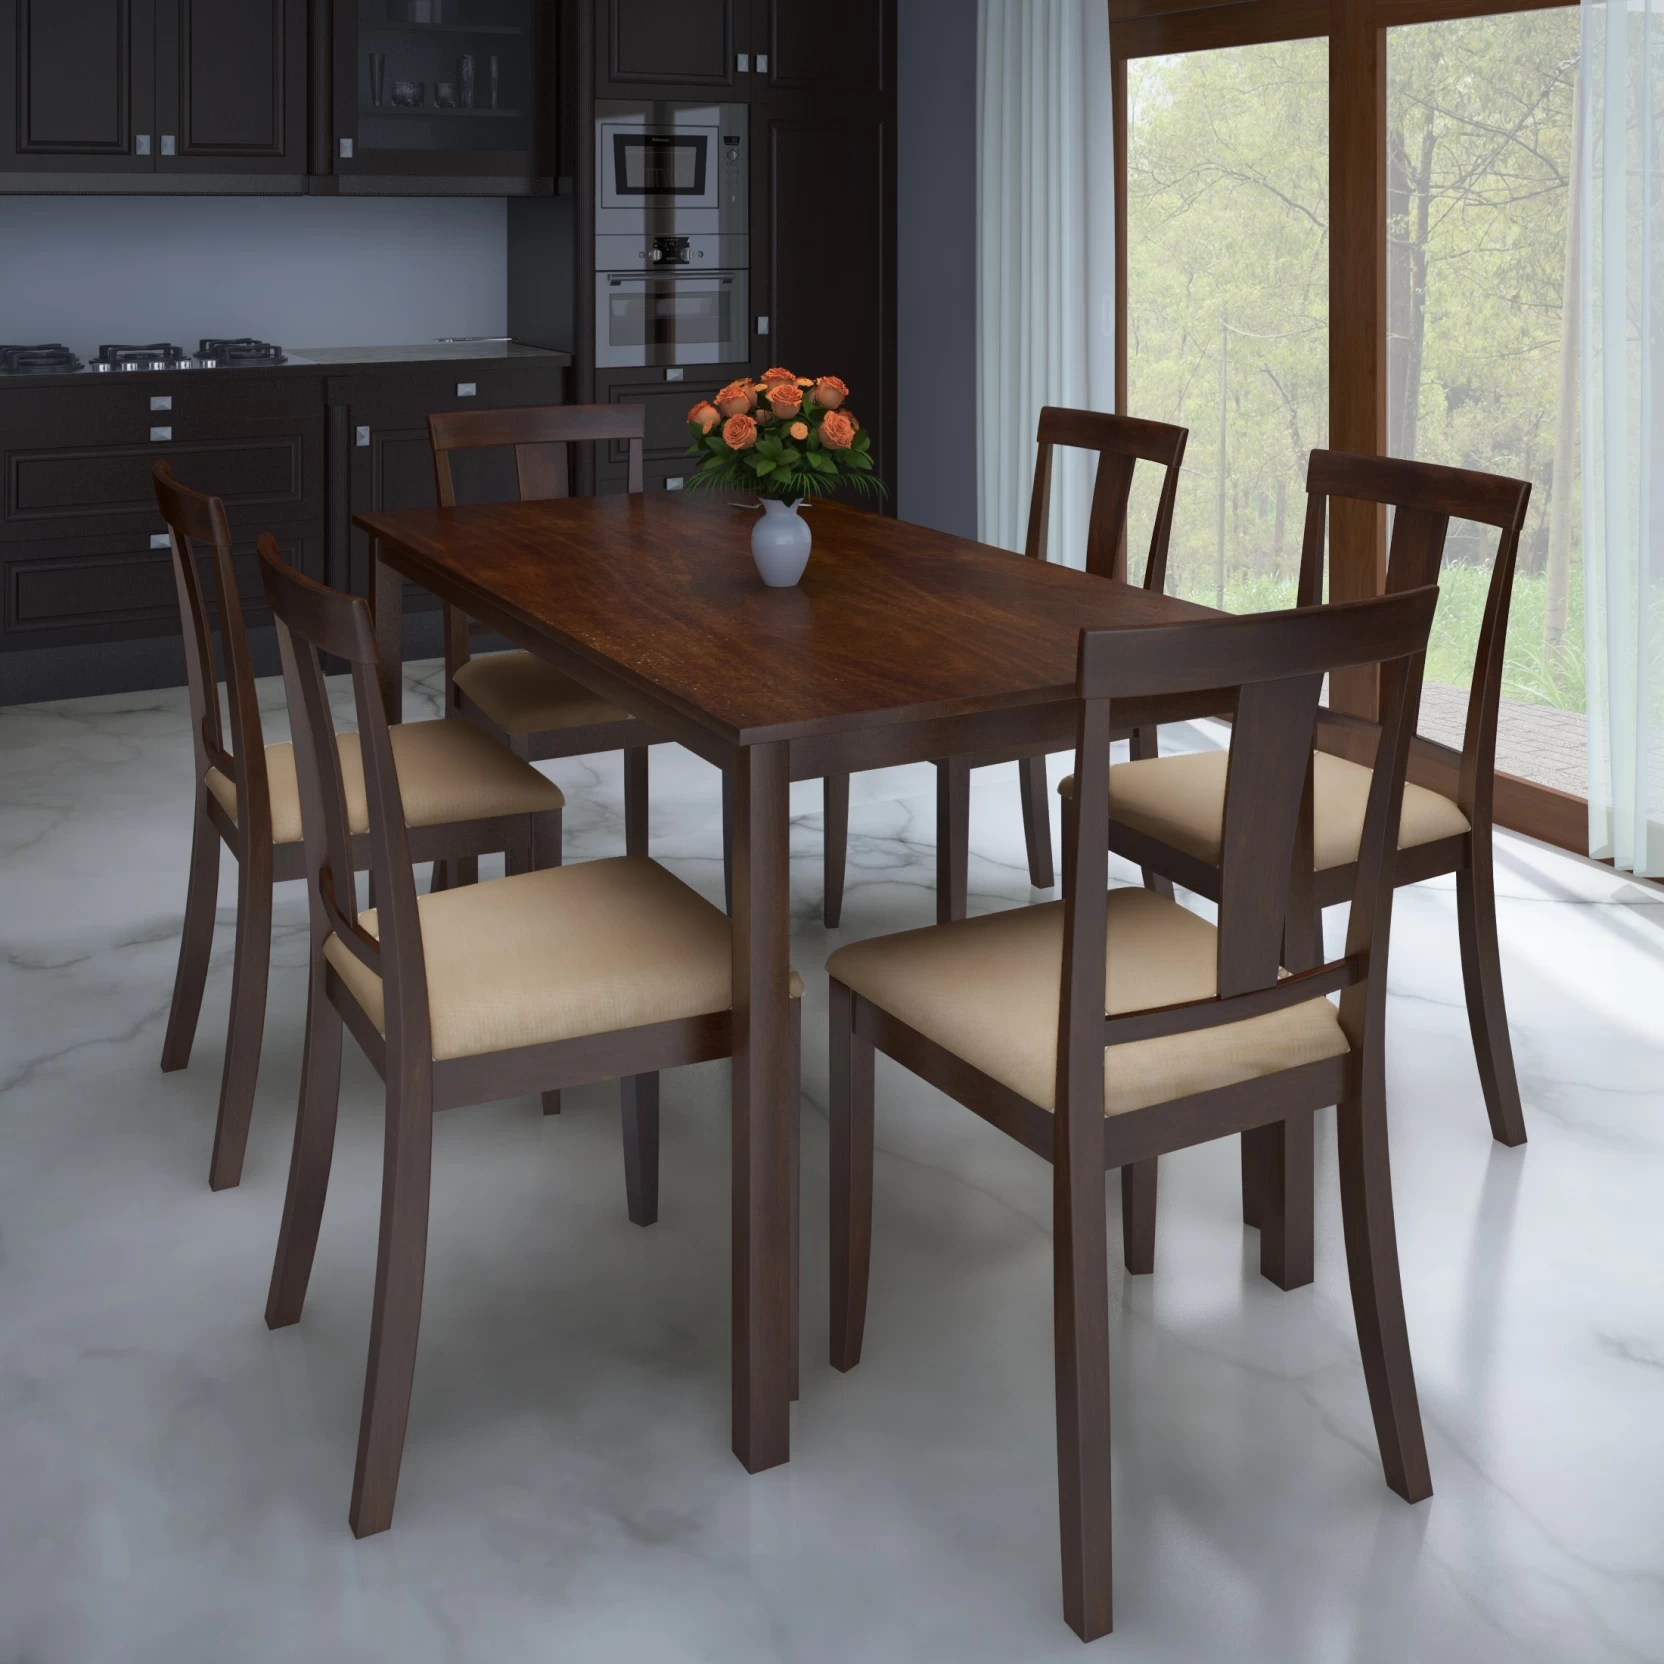 dining chair covers set of 6 india lawn chairs webbed aluminum folding perfect homes by flipkart fraser seater price